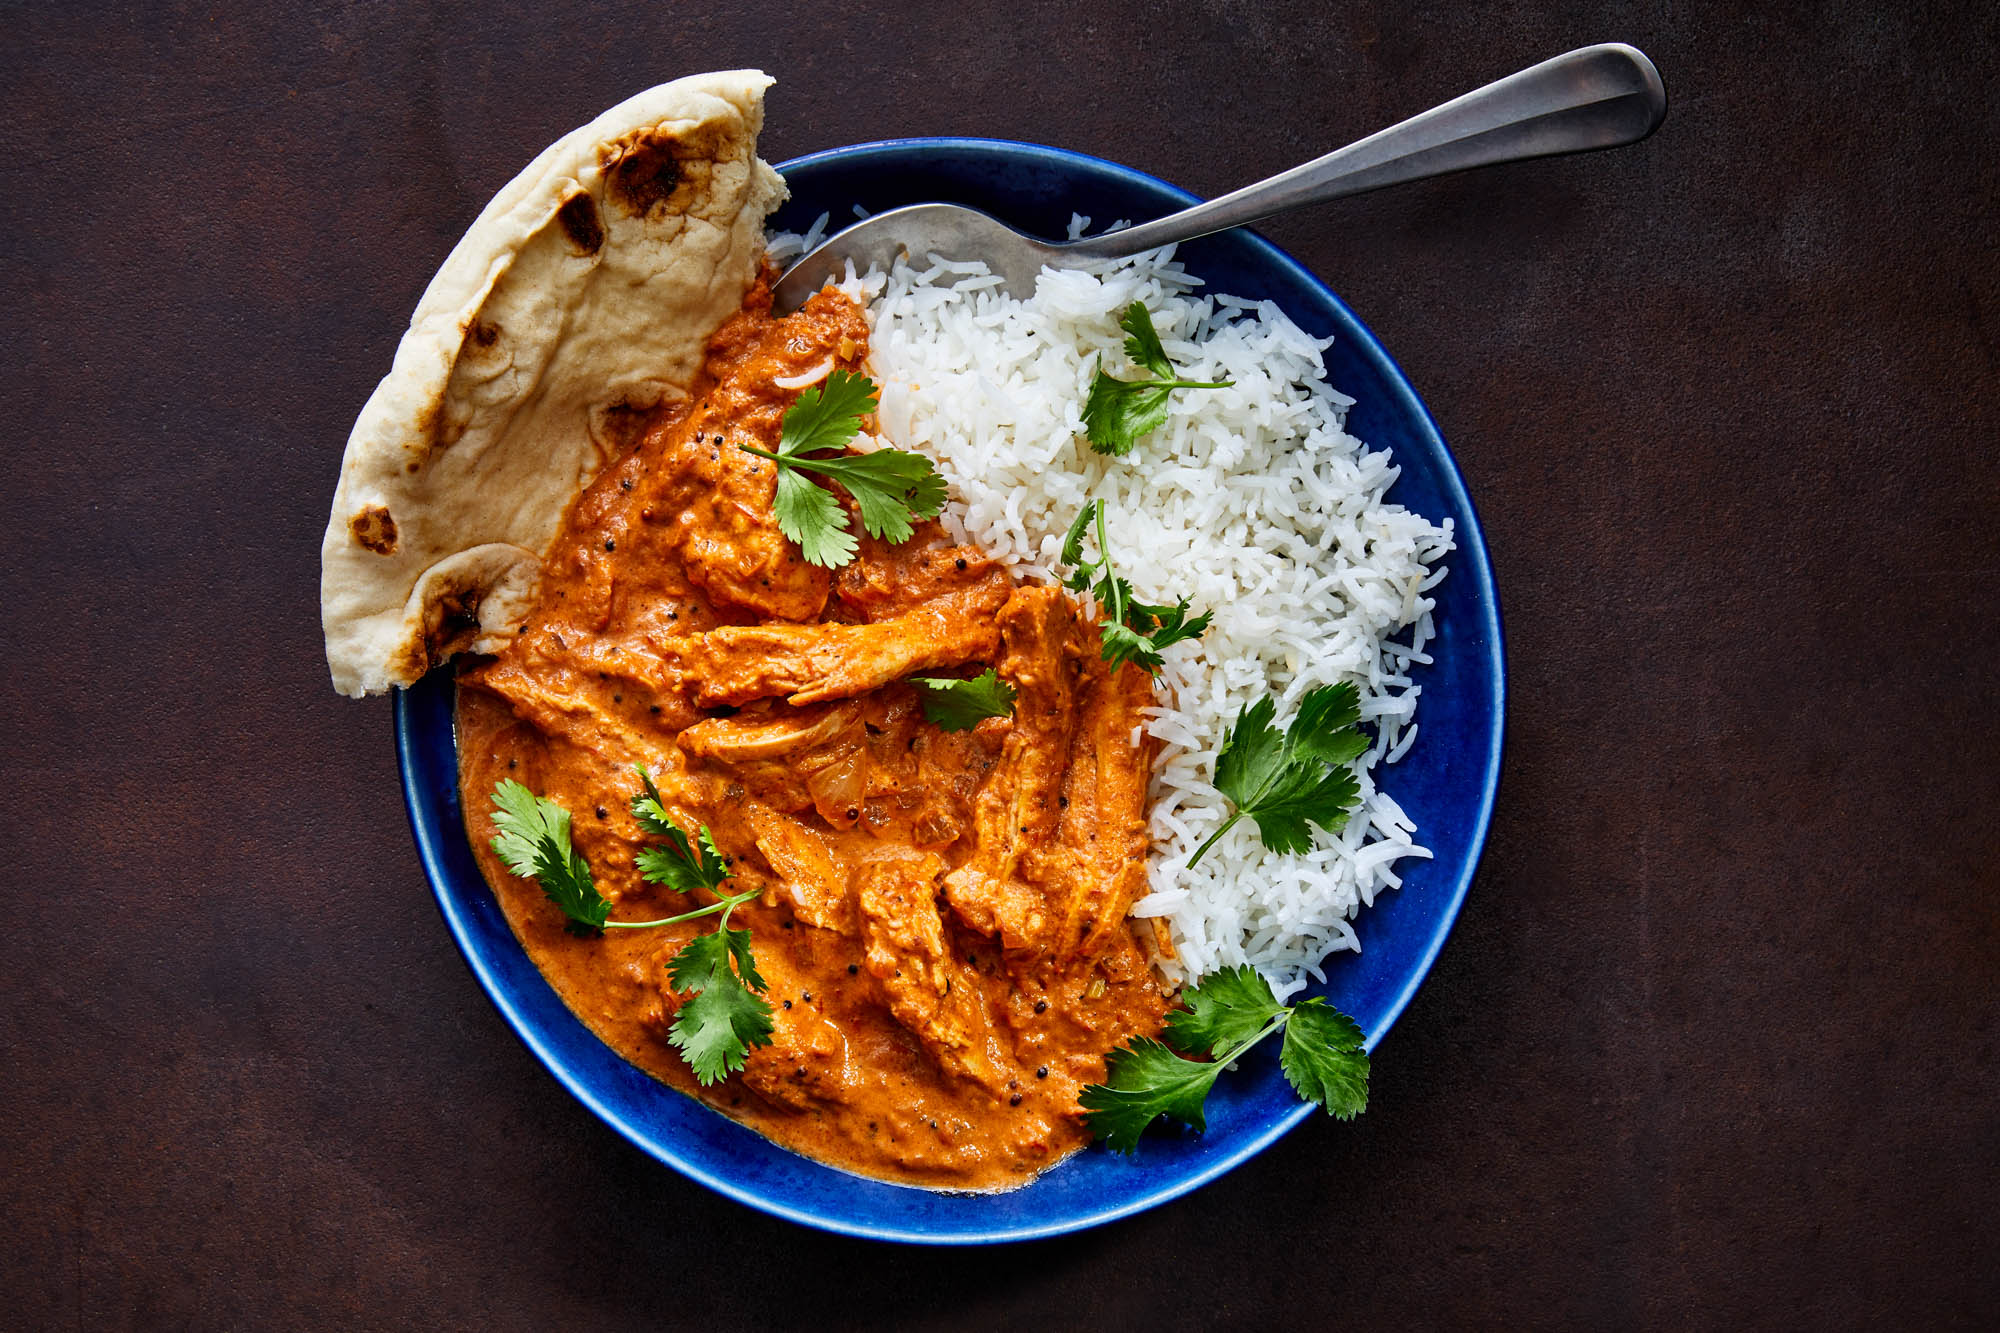 Turkey curry with rice and naan